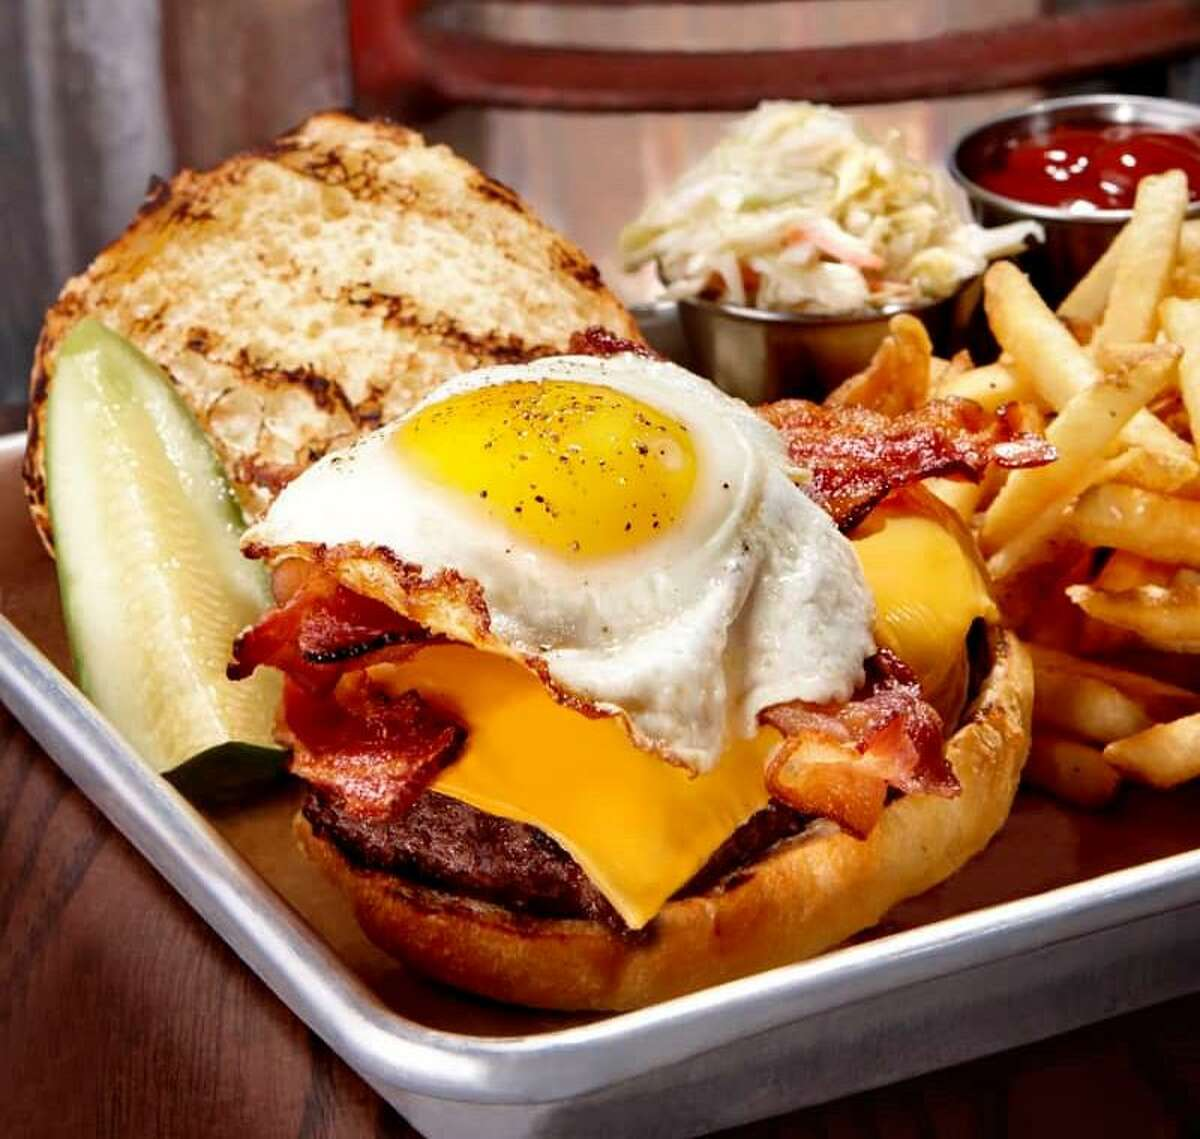 Little Barn, opening at 901 Bridgeport Ave., Shelton, offers a wide menu, including burgers.